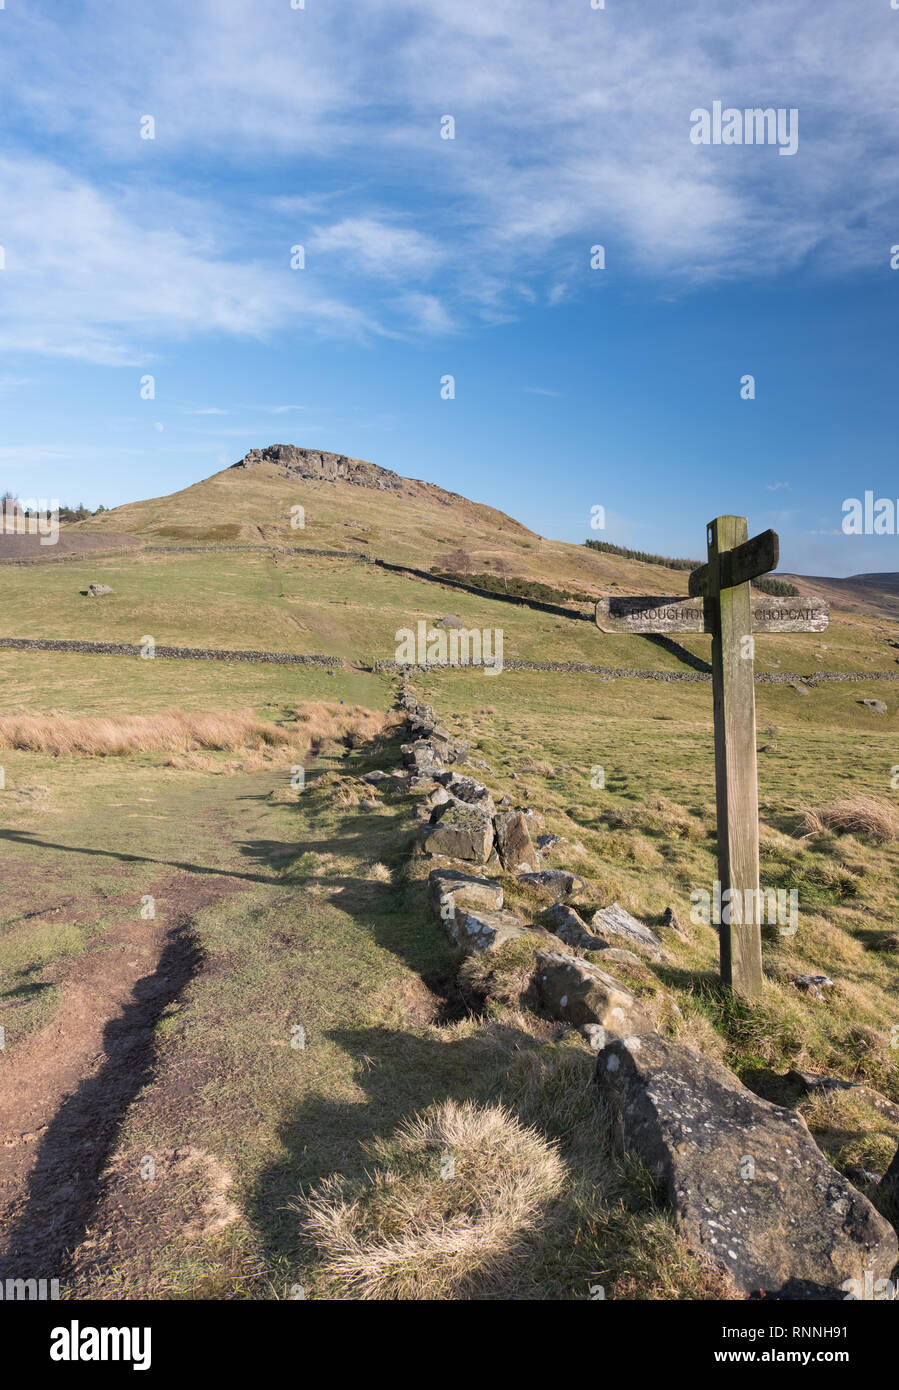 Wainstones and Hasty Bank from Garfit Gap on the Cleveland Way in the North York Moors - Stock Image